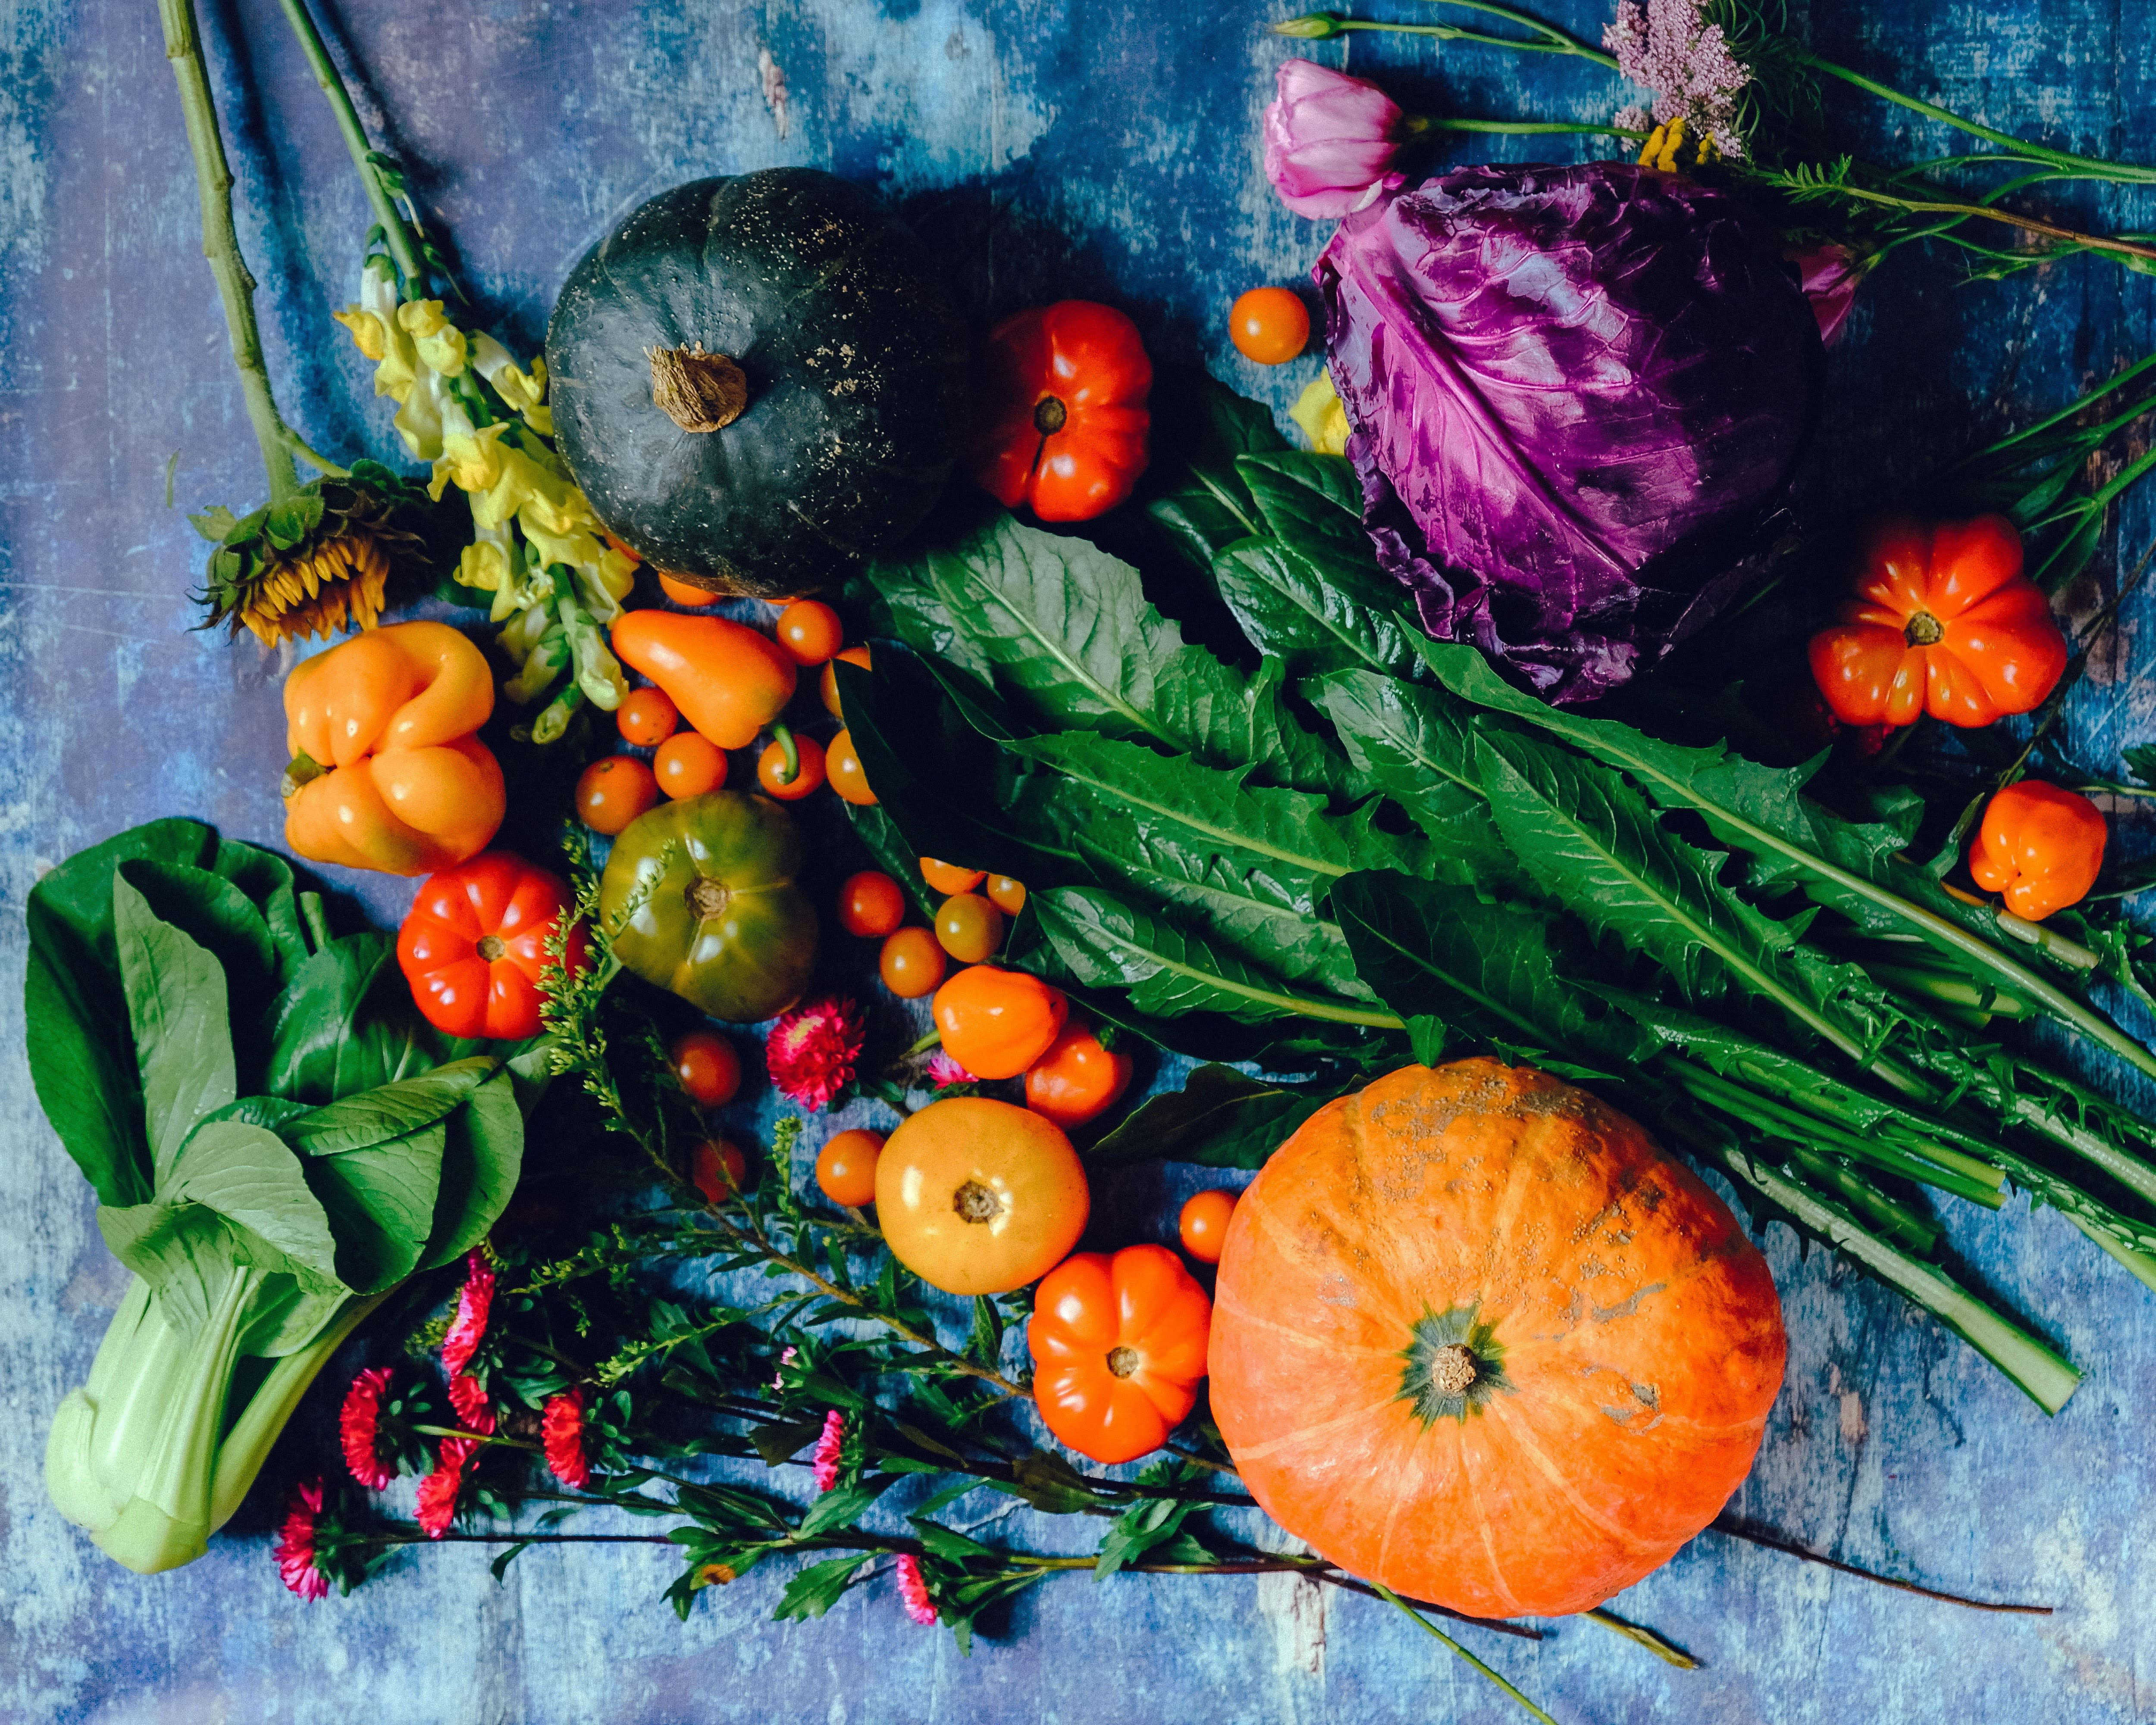 pumpkin and other autumn vegetables